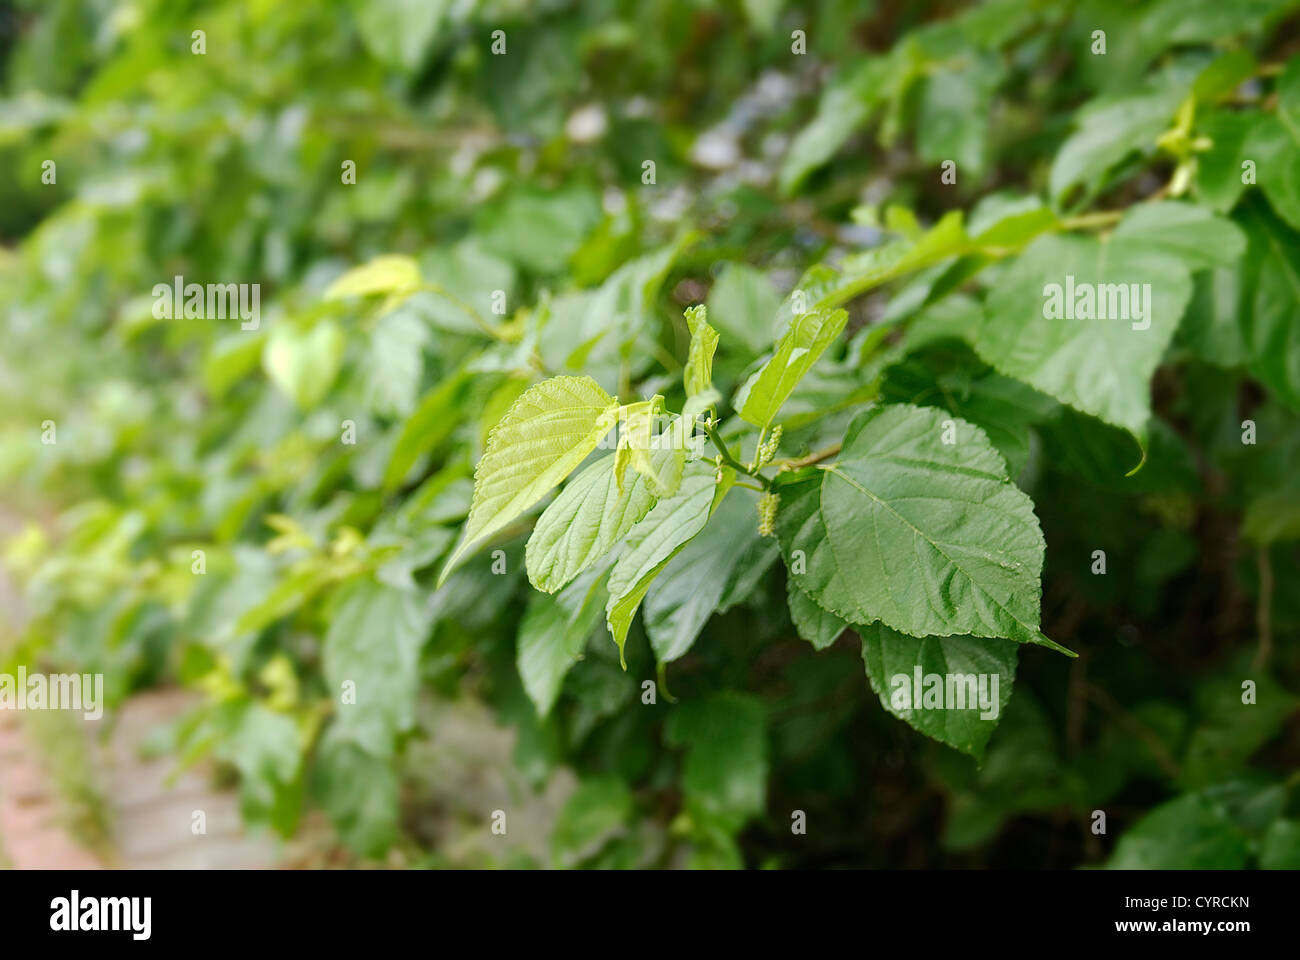 Taiwan is like spring all year round, every day people feel good when see green leaves. - Stock Image